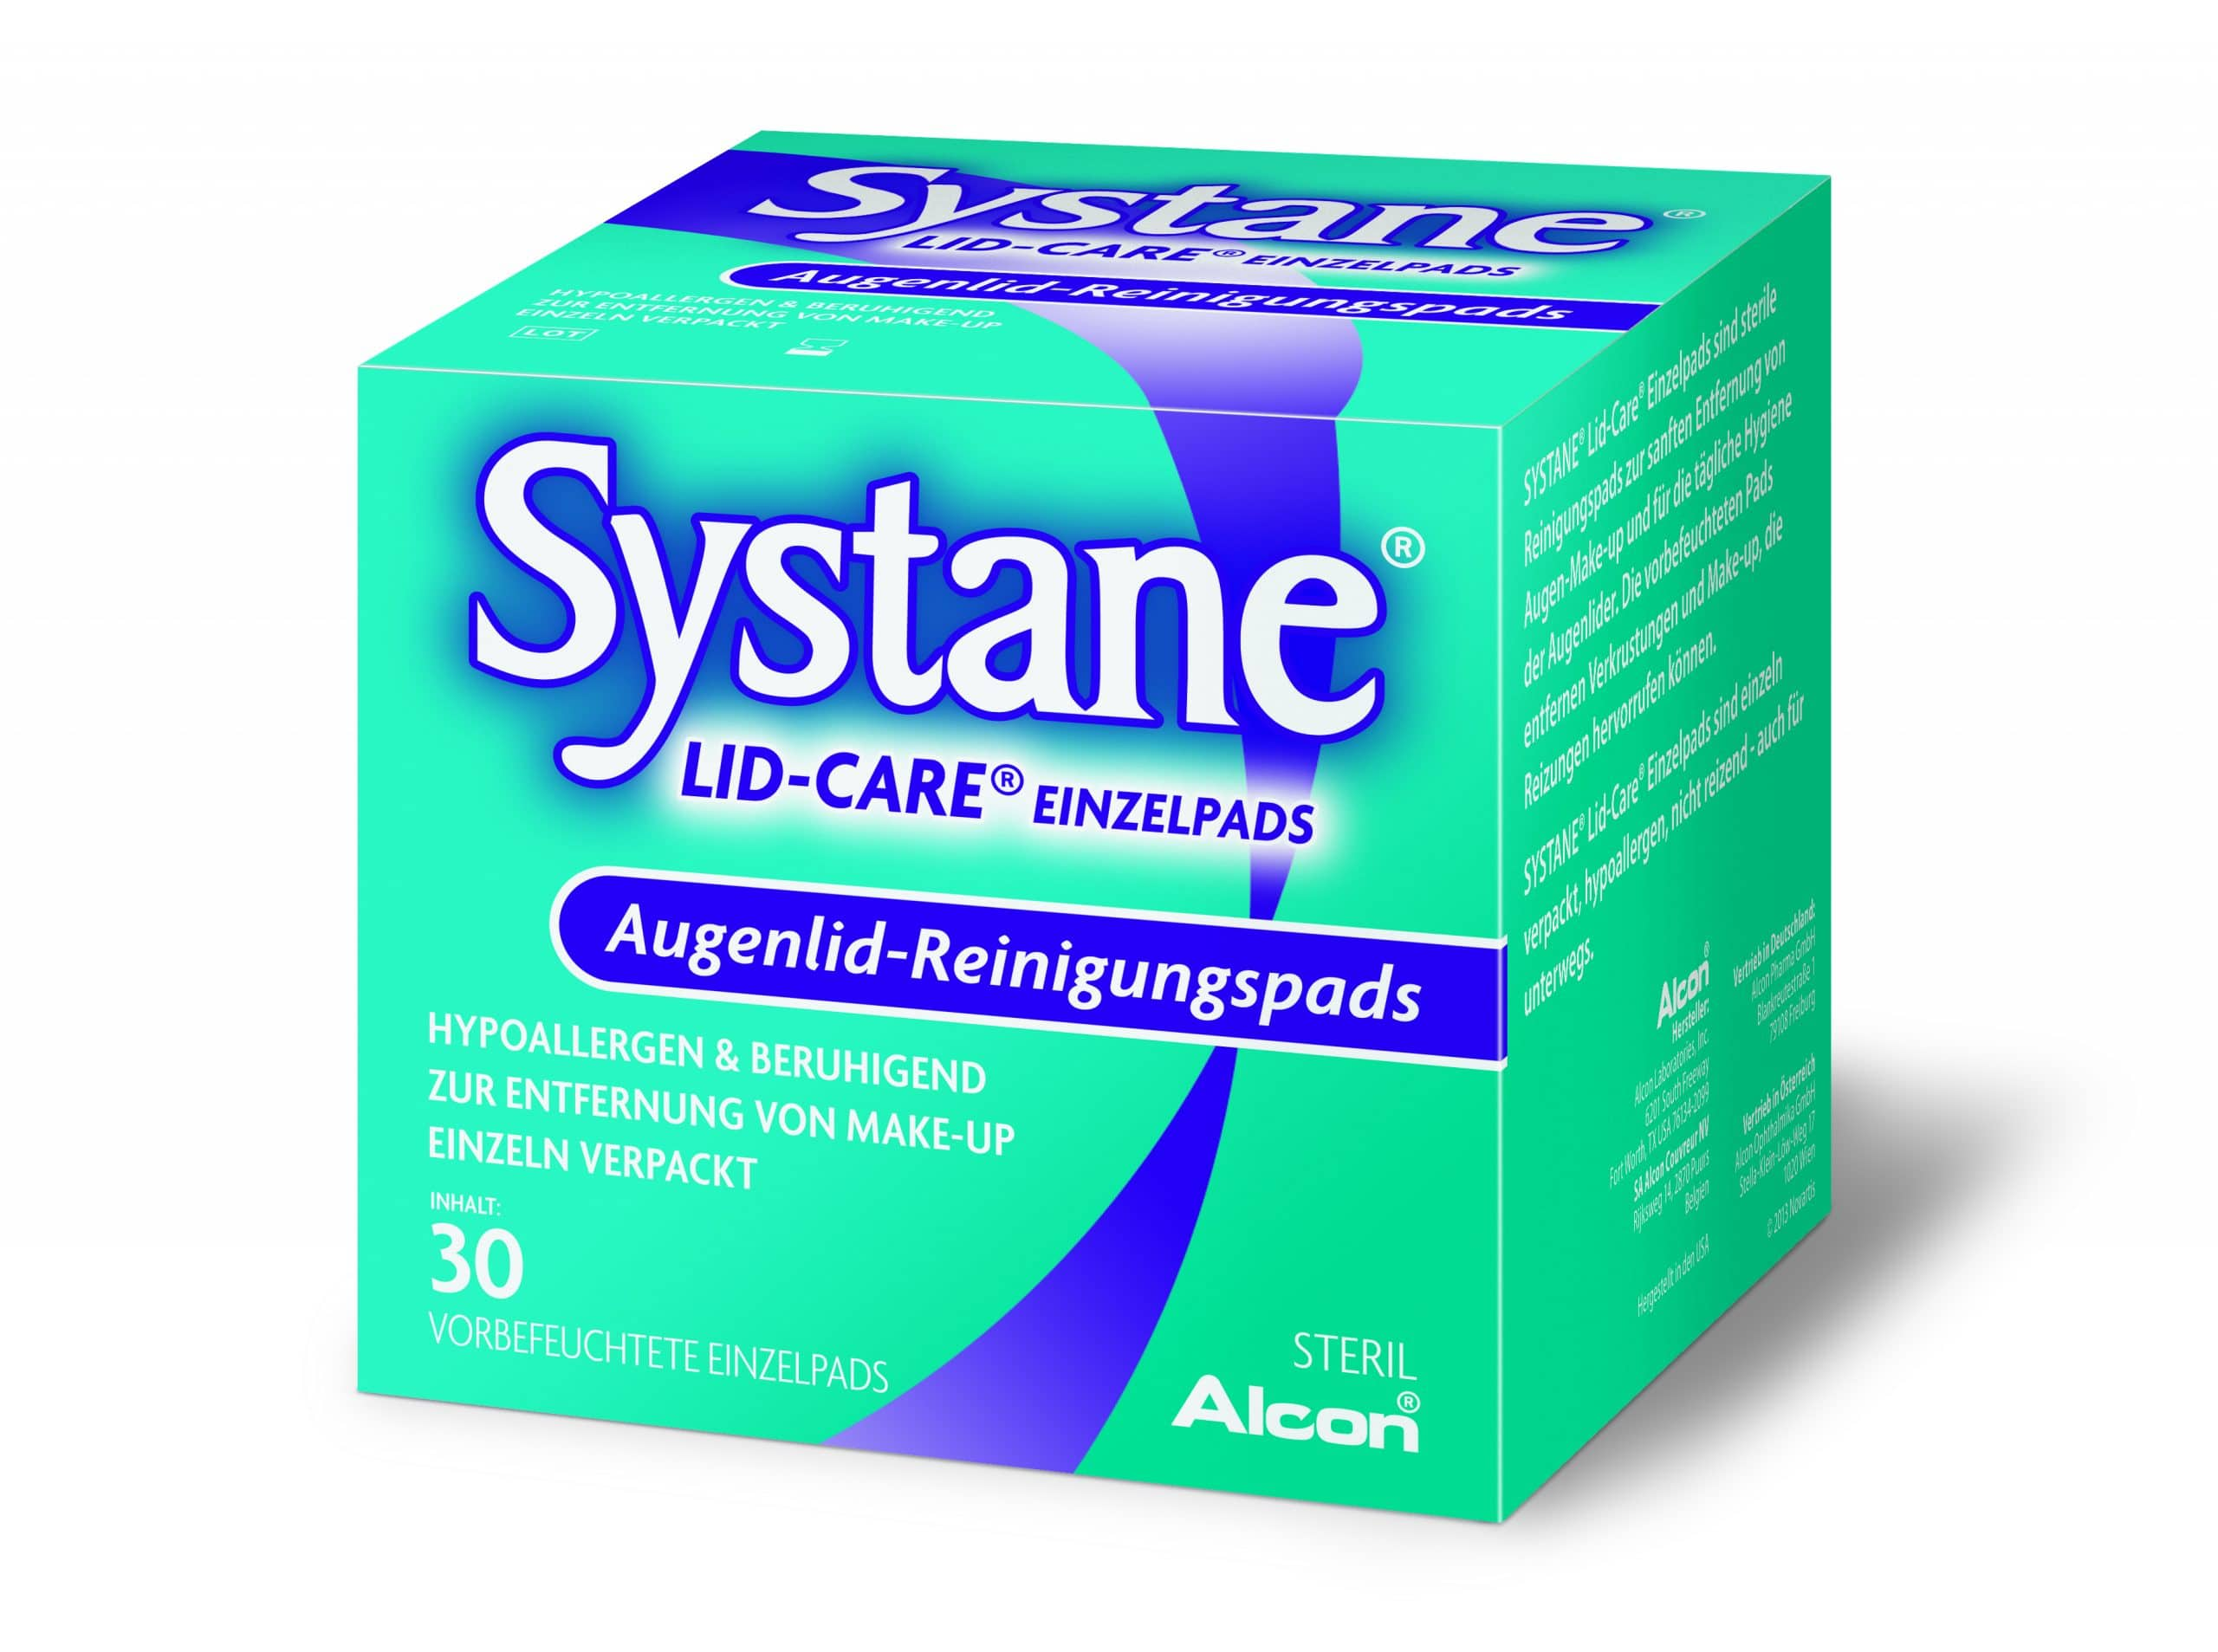 Systane LidCare